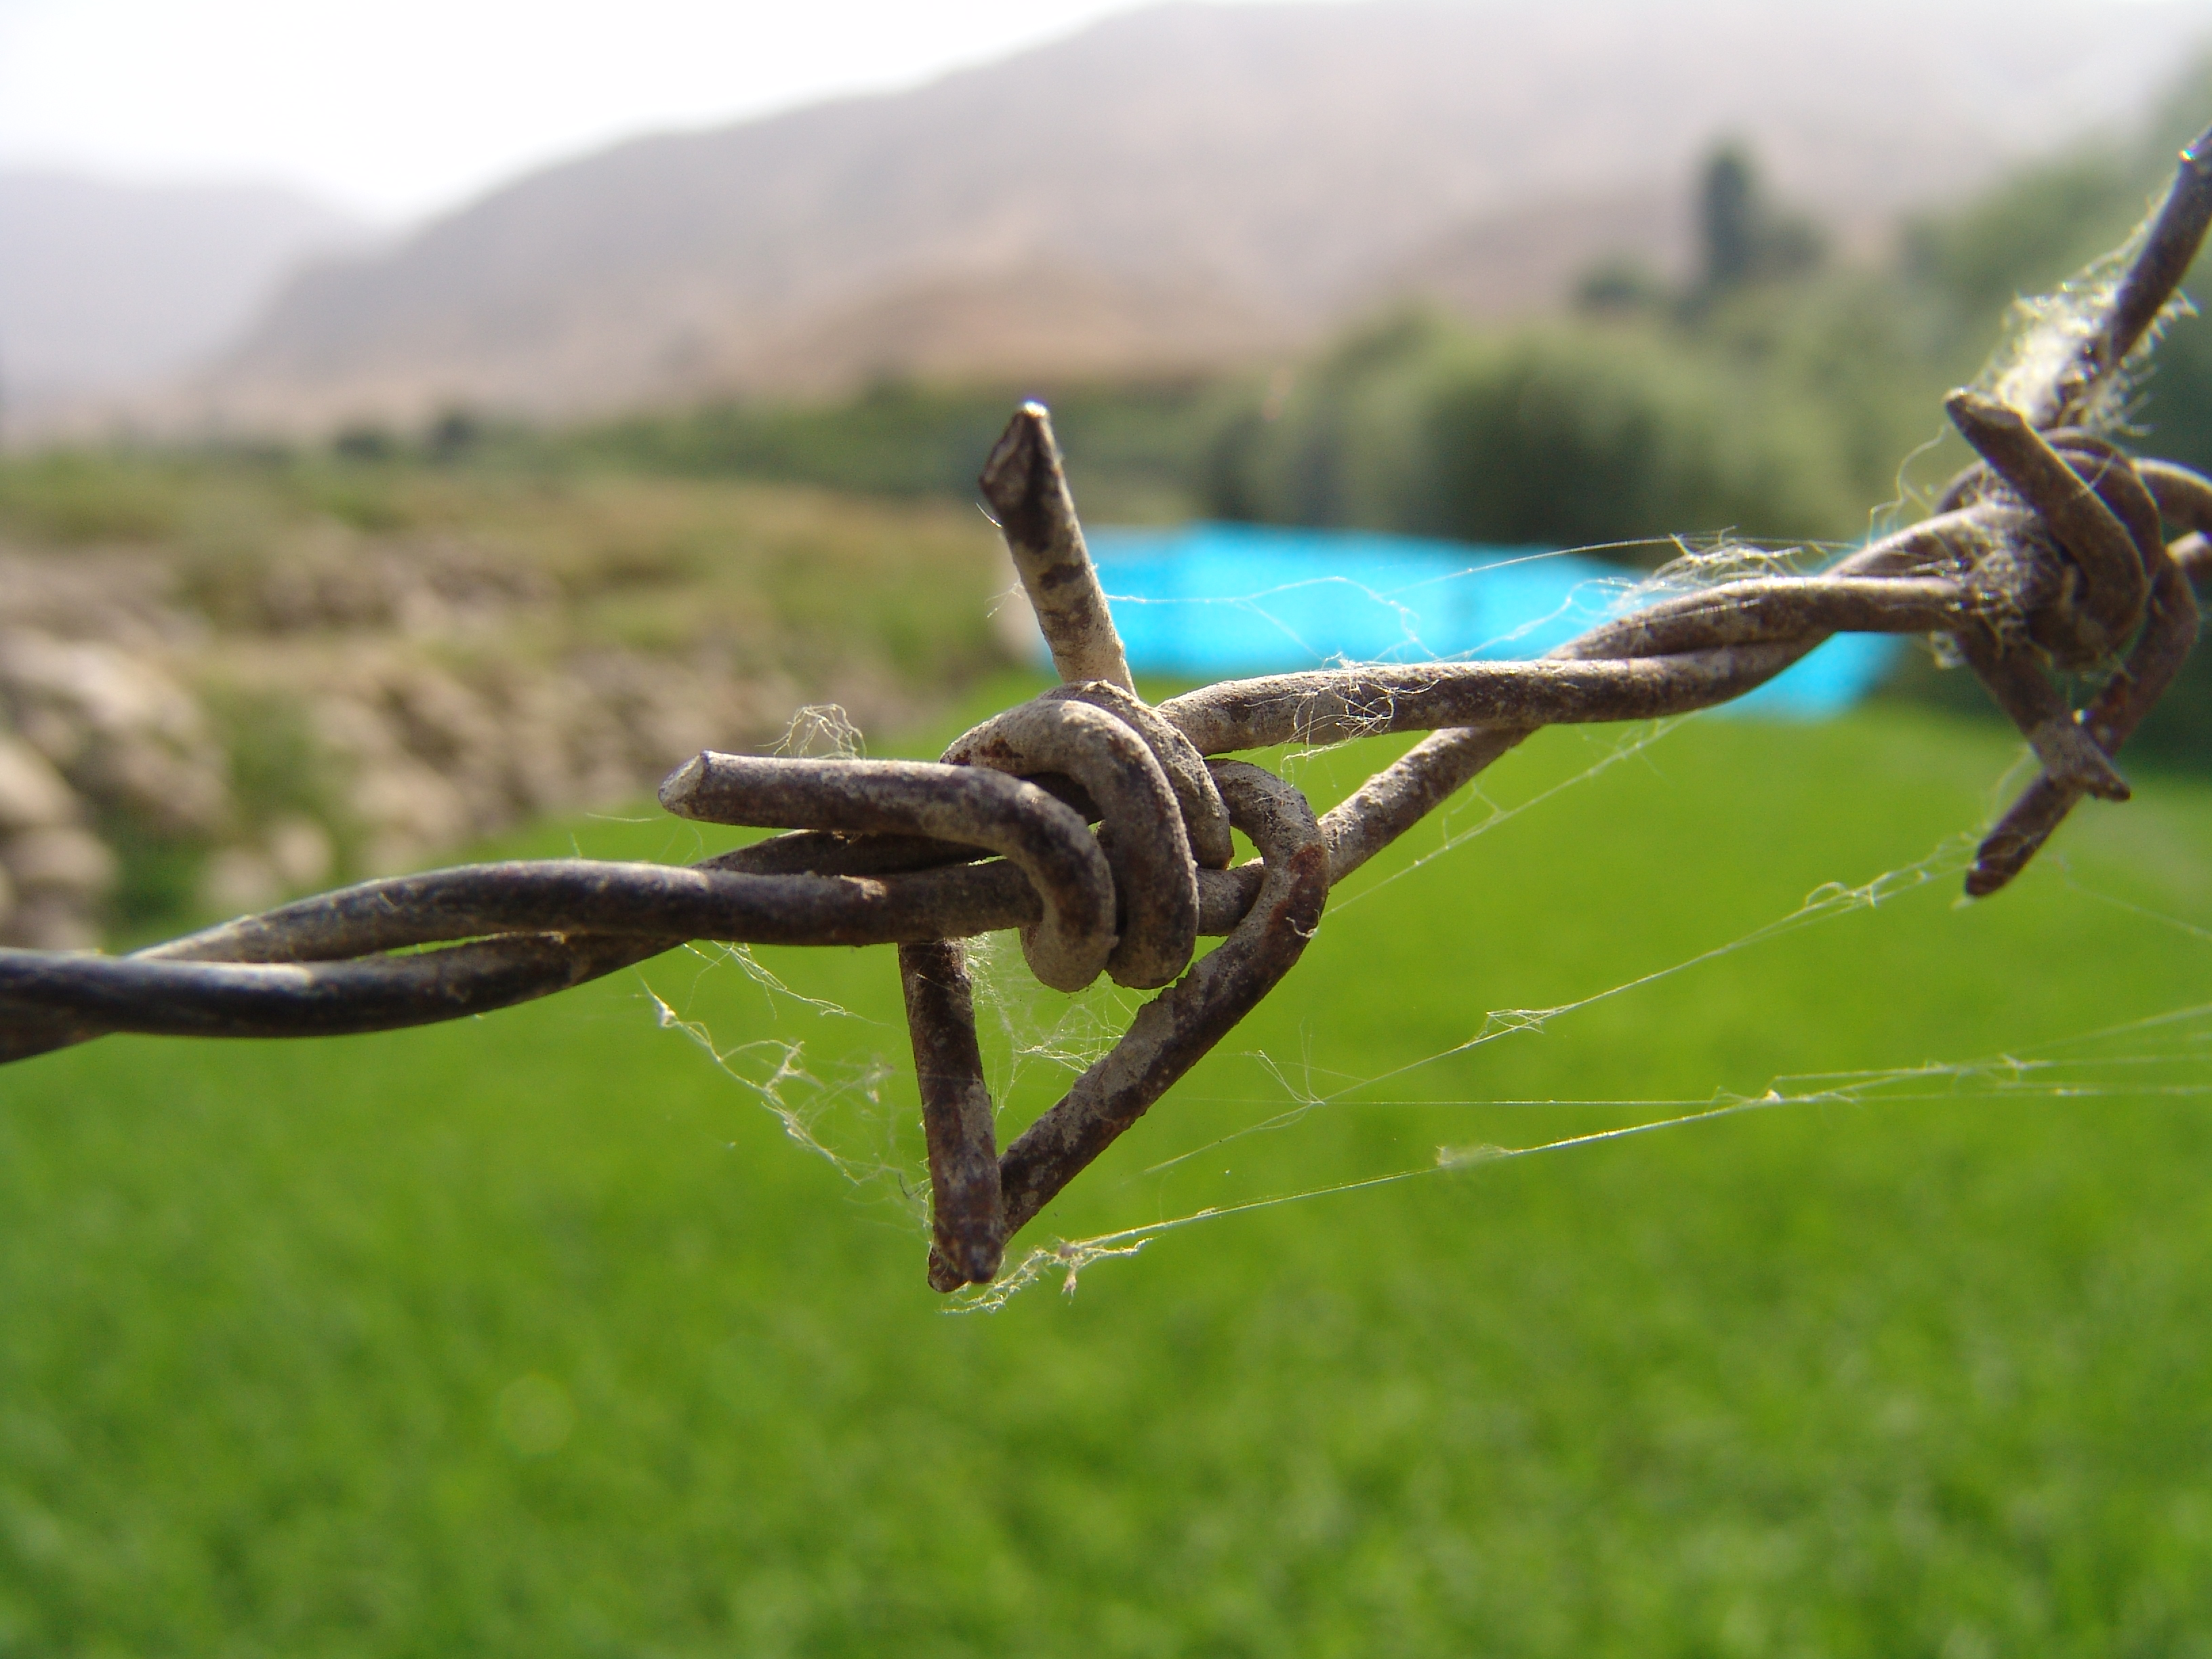 File:Barbed Wire 1.JPG - Wikipedia, the free encyclopedia